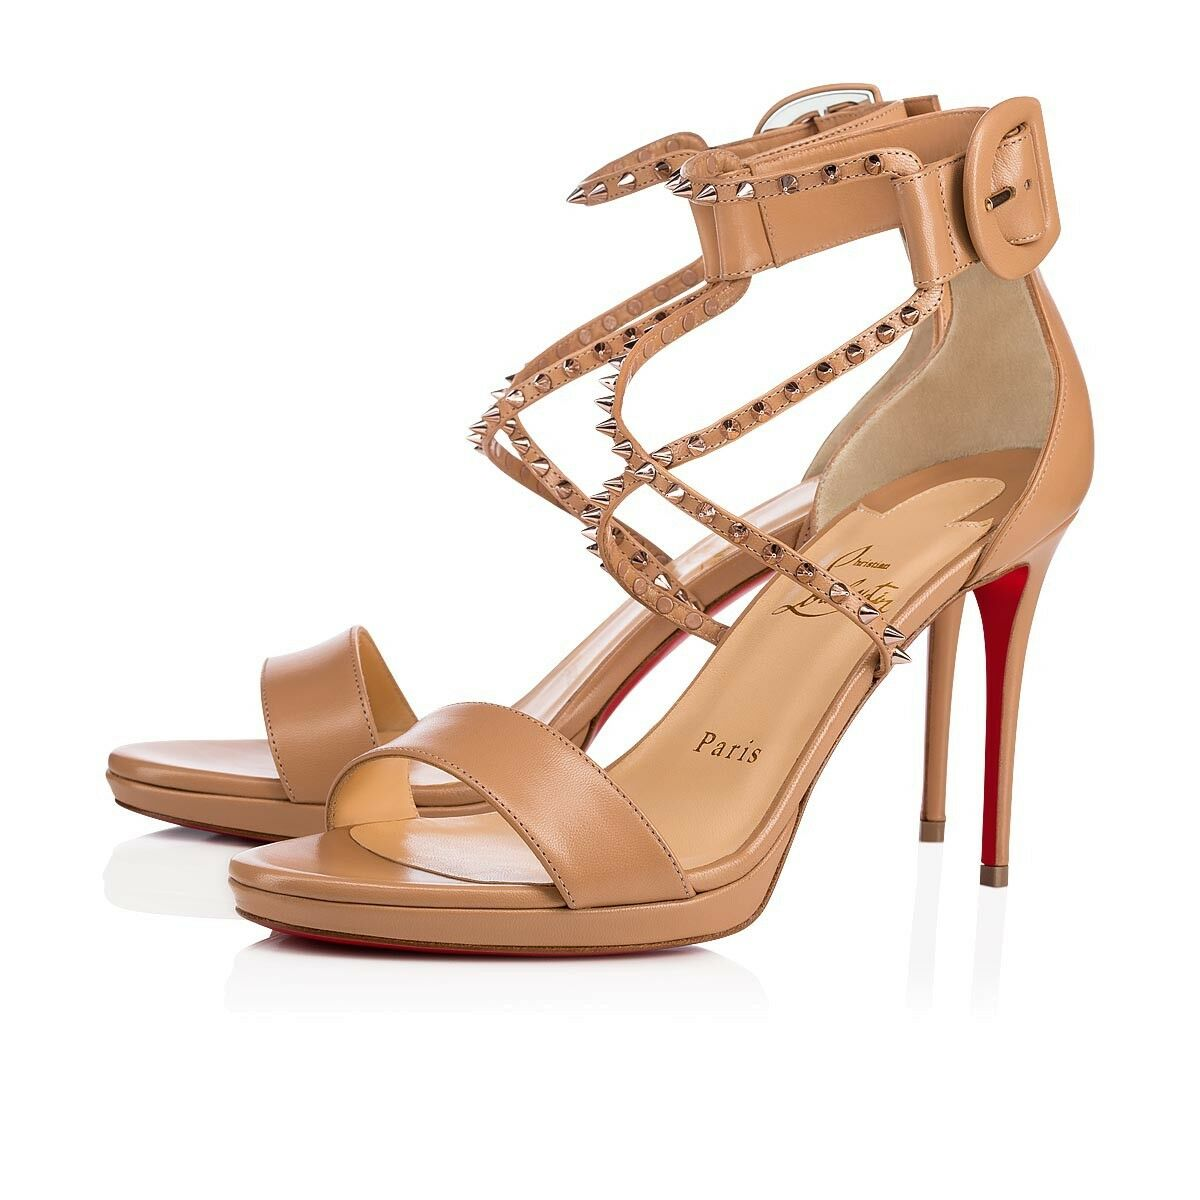 New Christian Louboutin Choca Lux High Nude Leather Sandals Heels Size 35,5